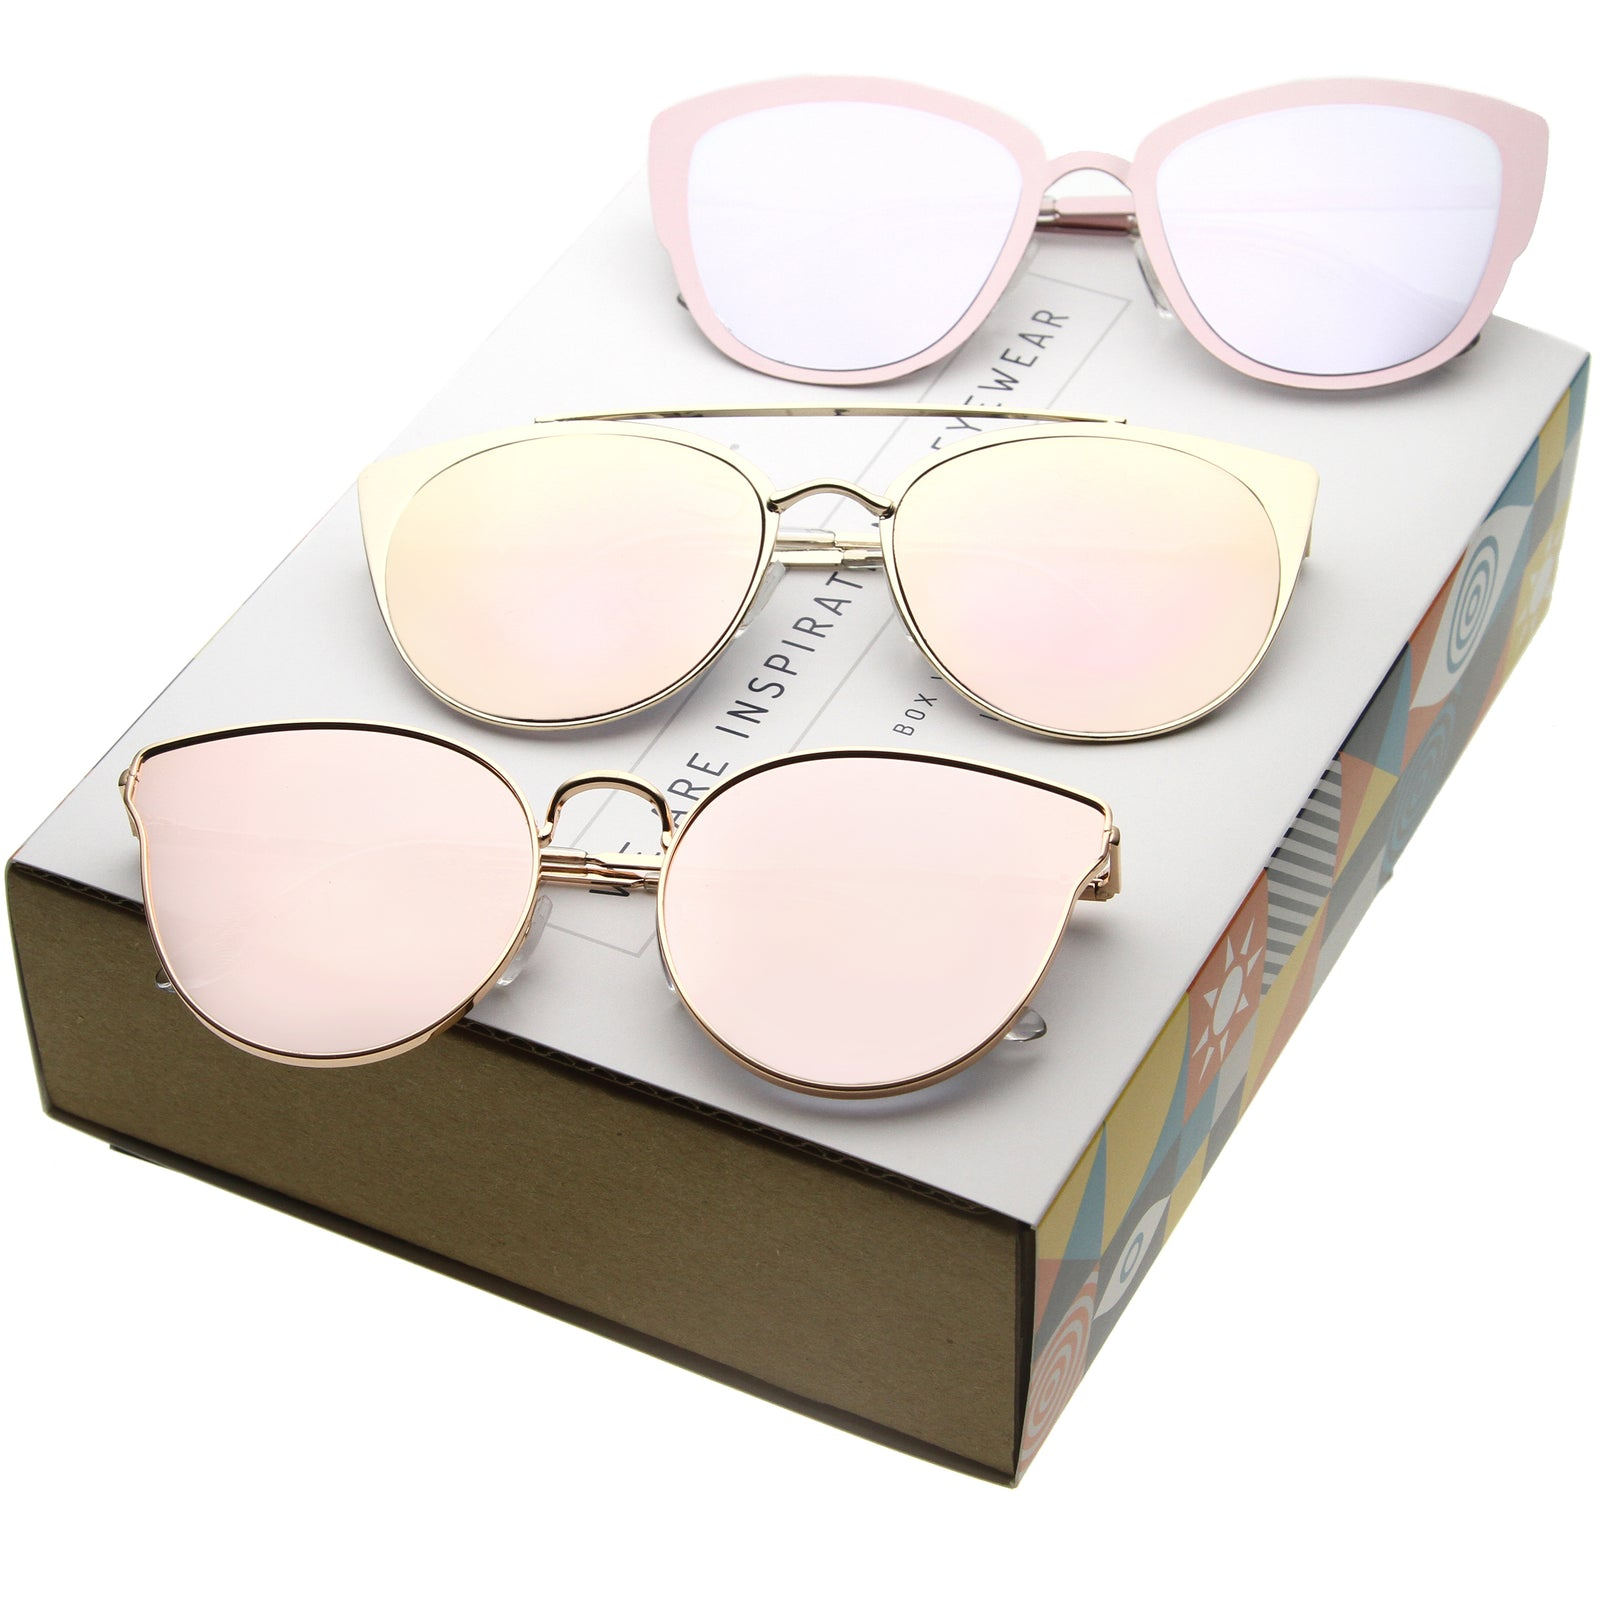 fb1a4de408e Women s Premium Metal Mirrored Flat Lens Cat Eye Sunglasses C362  Promo Box